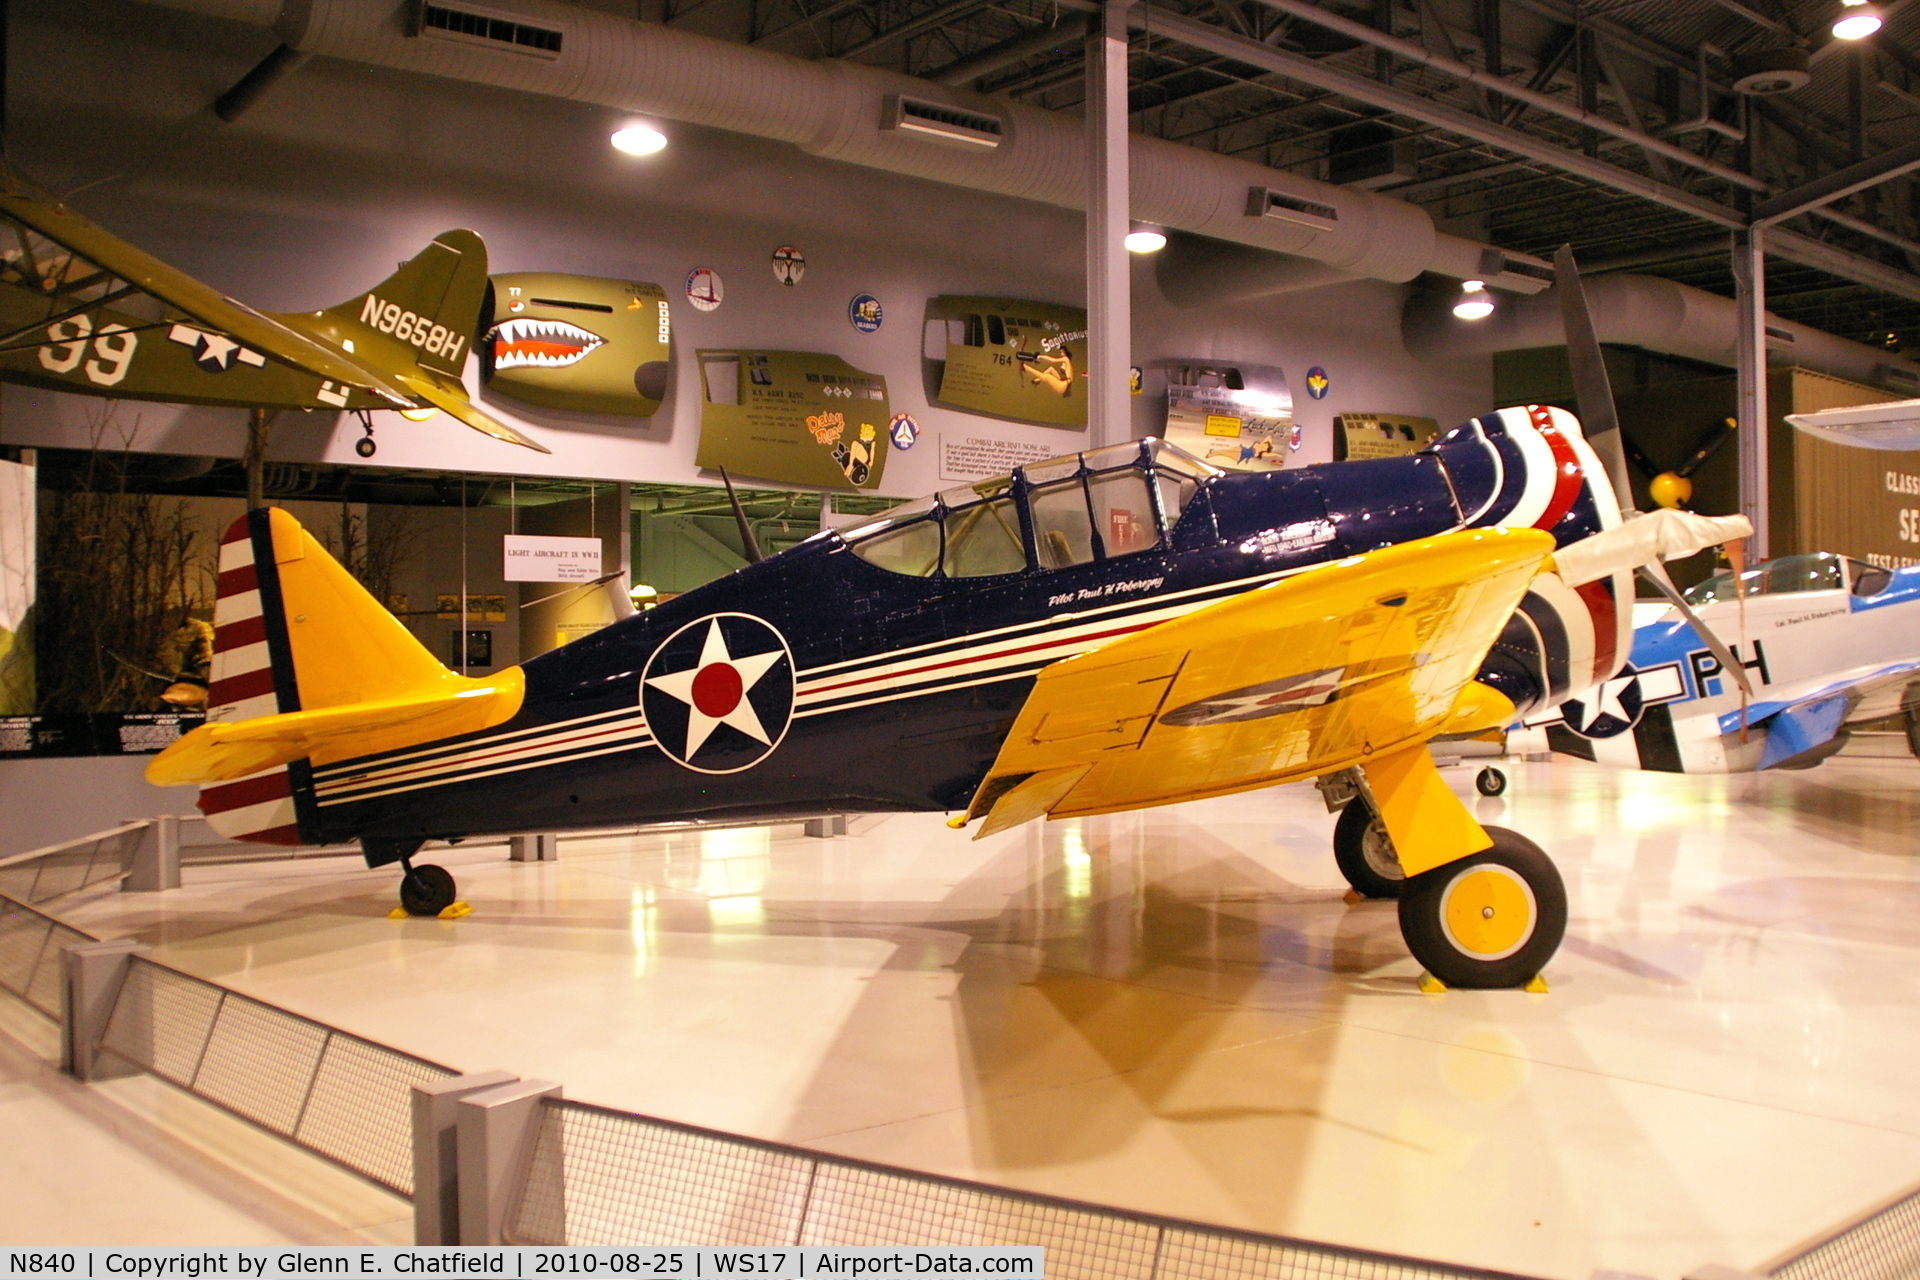 N840, 1940 North American P-64 C/N 68-3061, At the EAA Museum